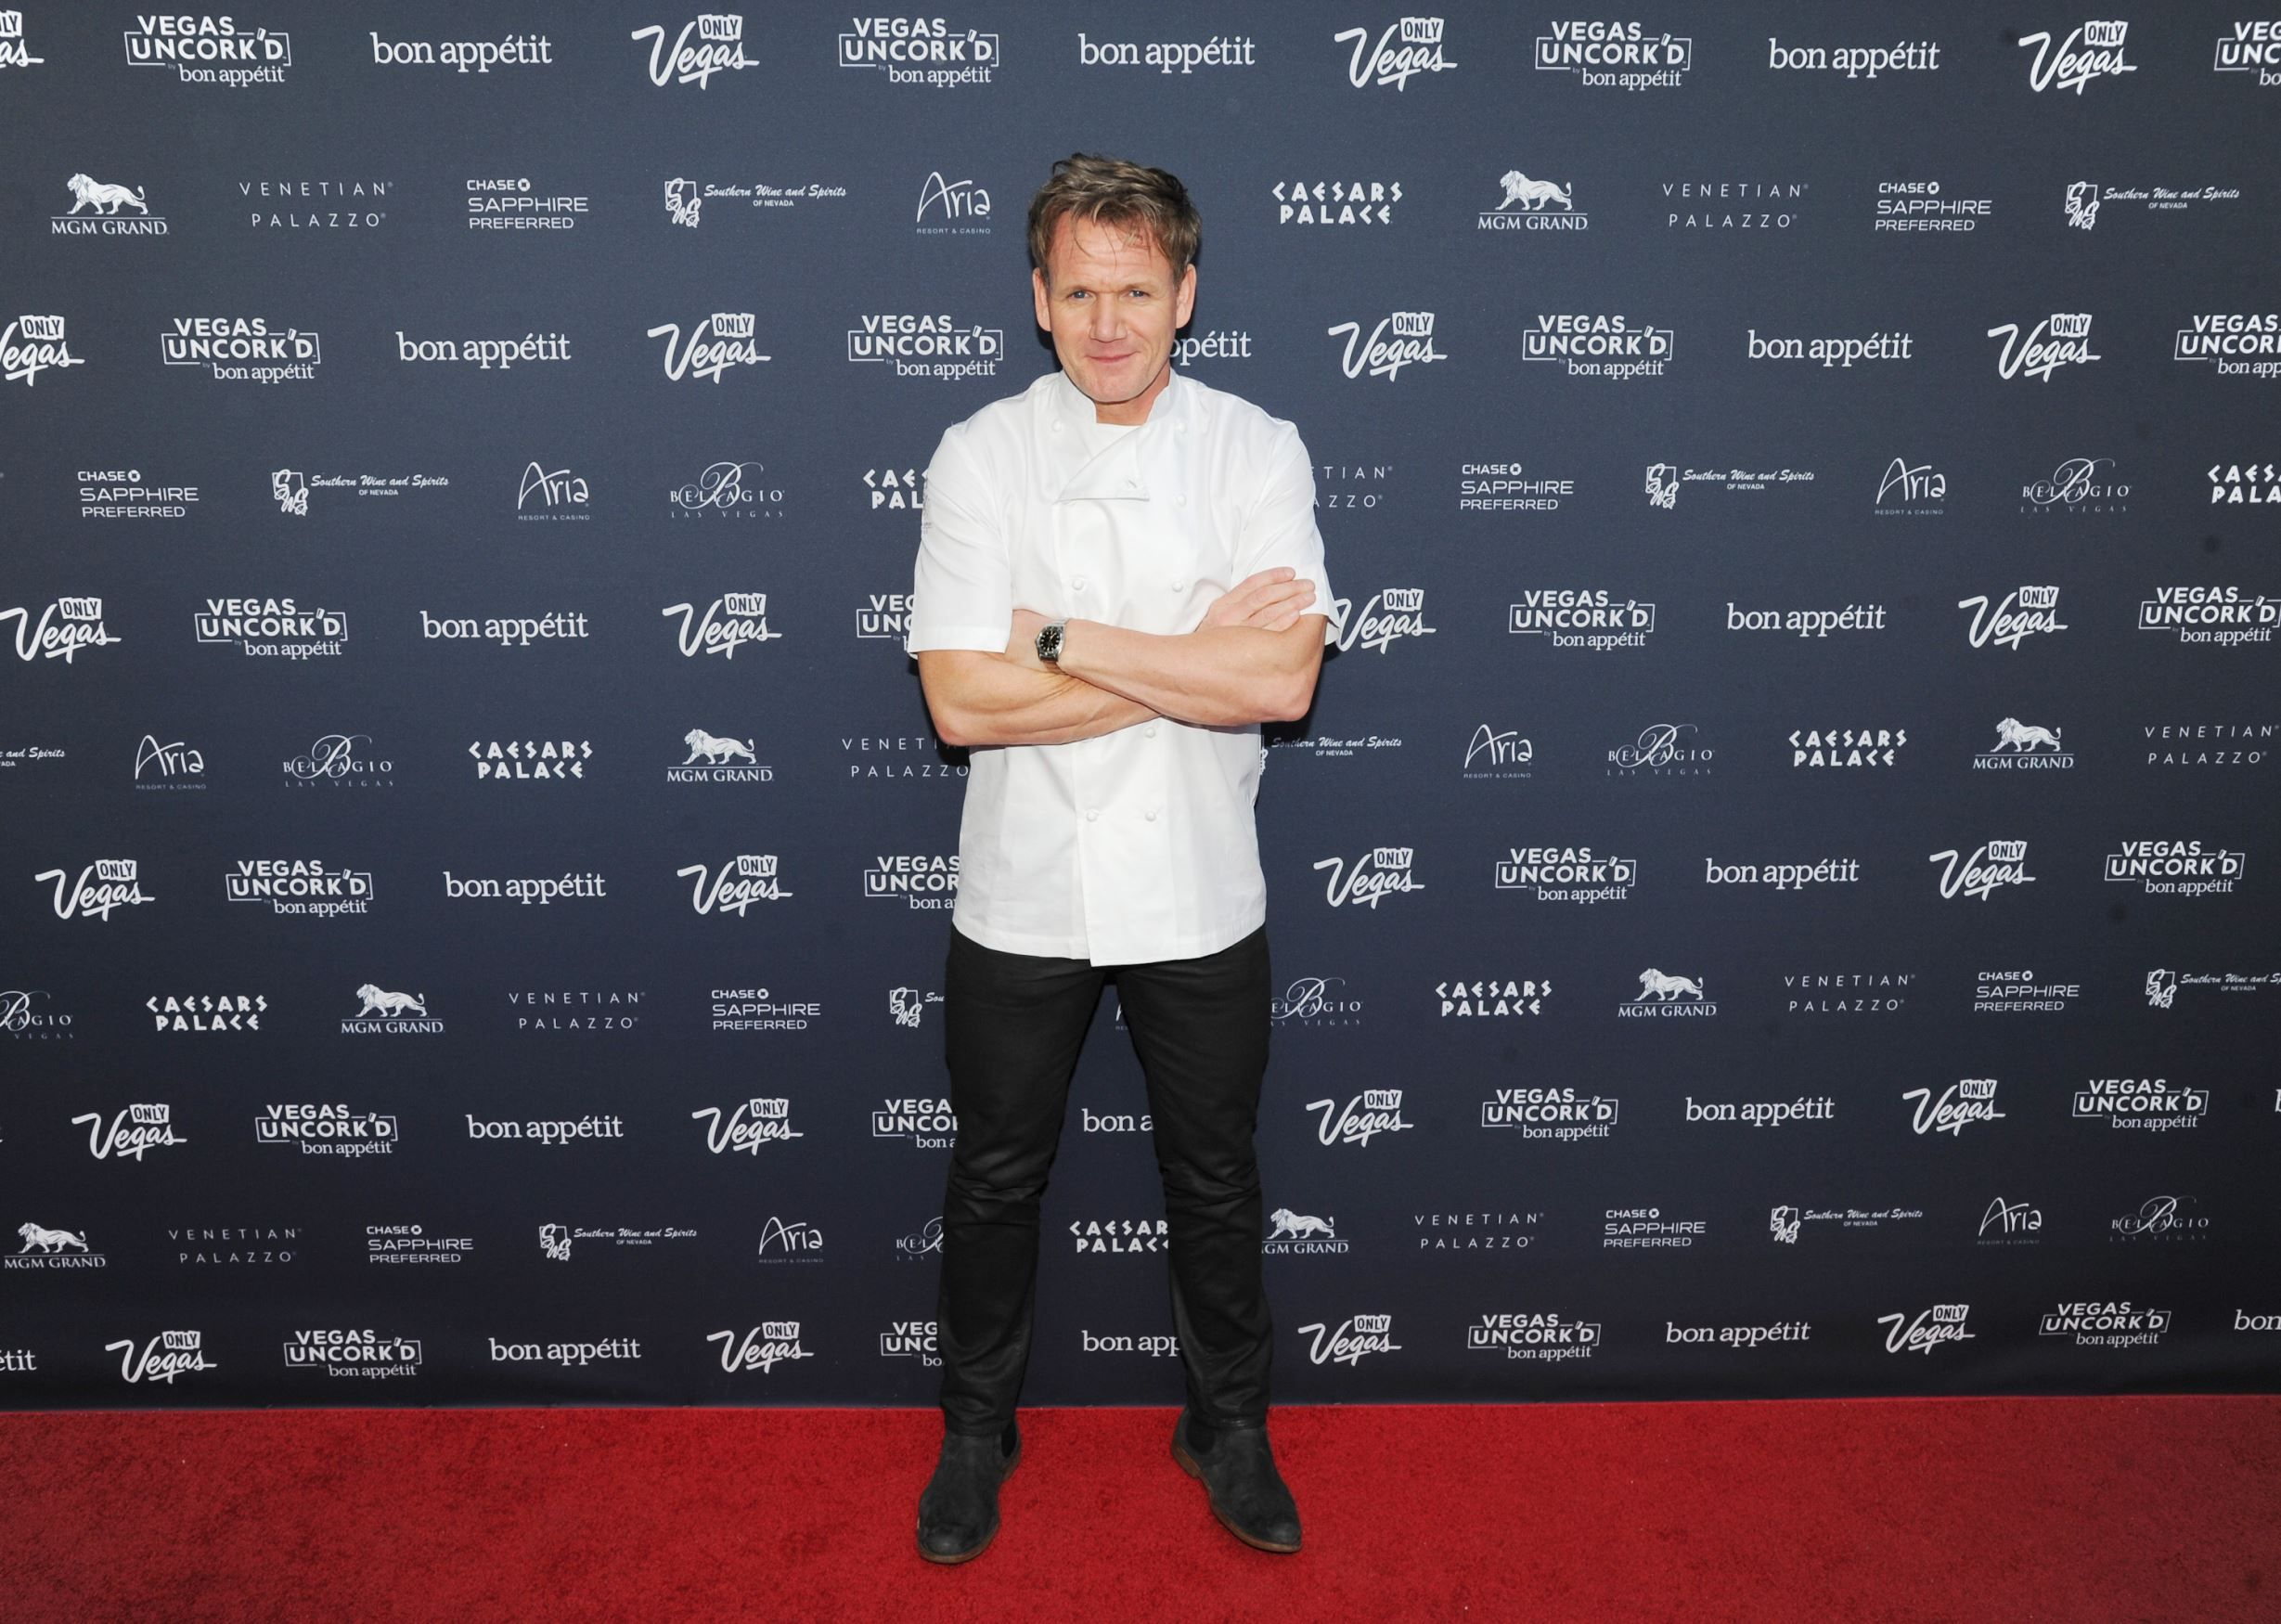 Richest Chefs In The World Curiosidades Gordon Ramsay Ramsay Restaurant Cooking Contest